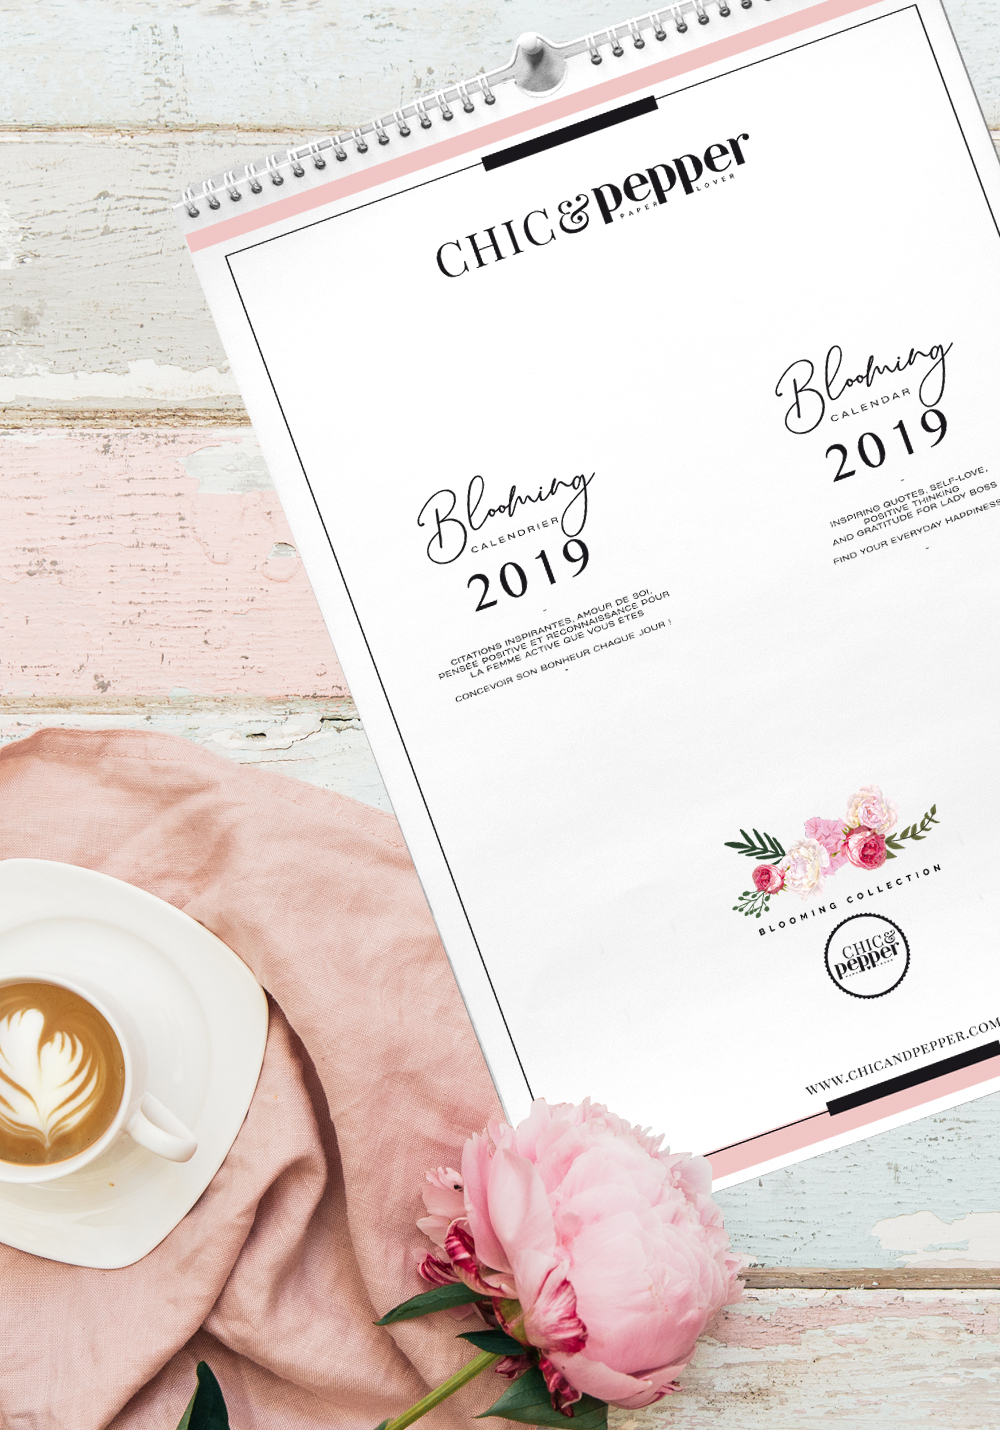 mood board collection blooming girl boss chic and pepper 4